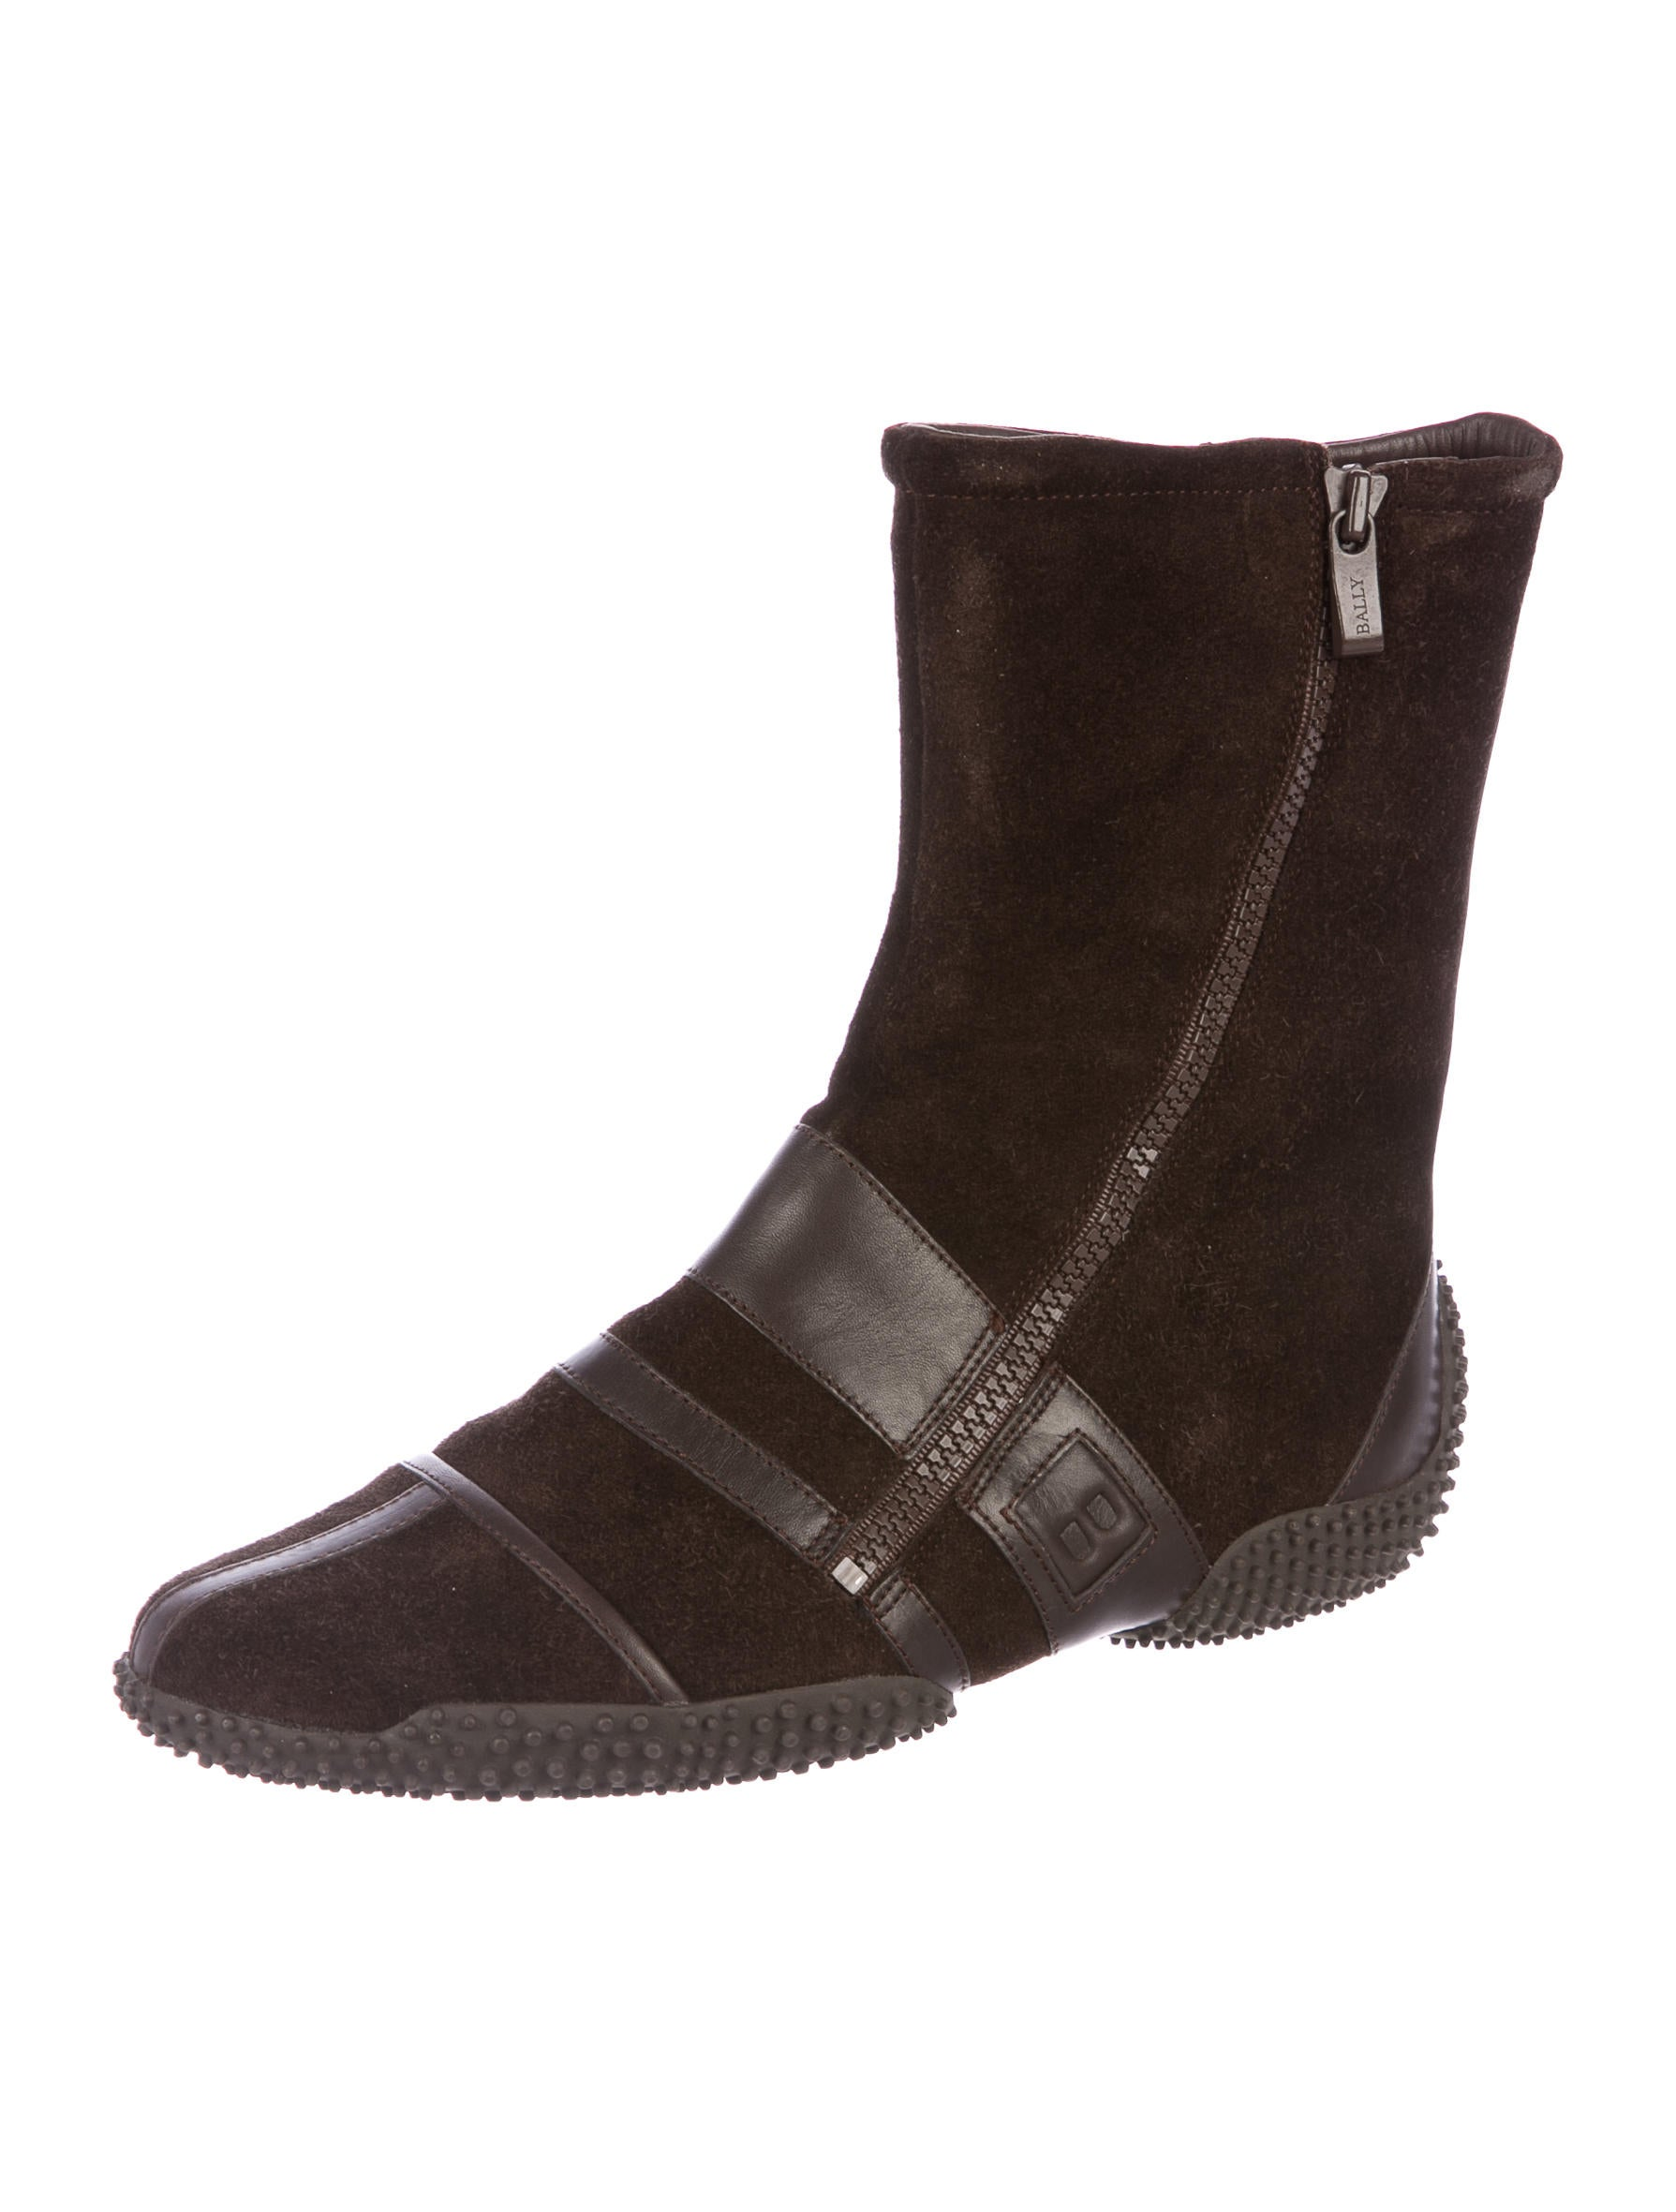 outlet view Bally Round-Toe Suede Ankle Boots discount get authentic n8sWC4x